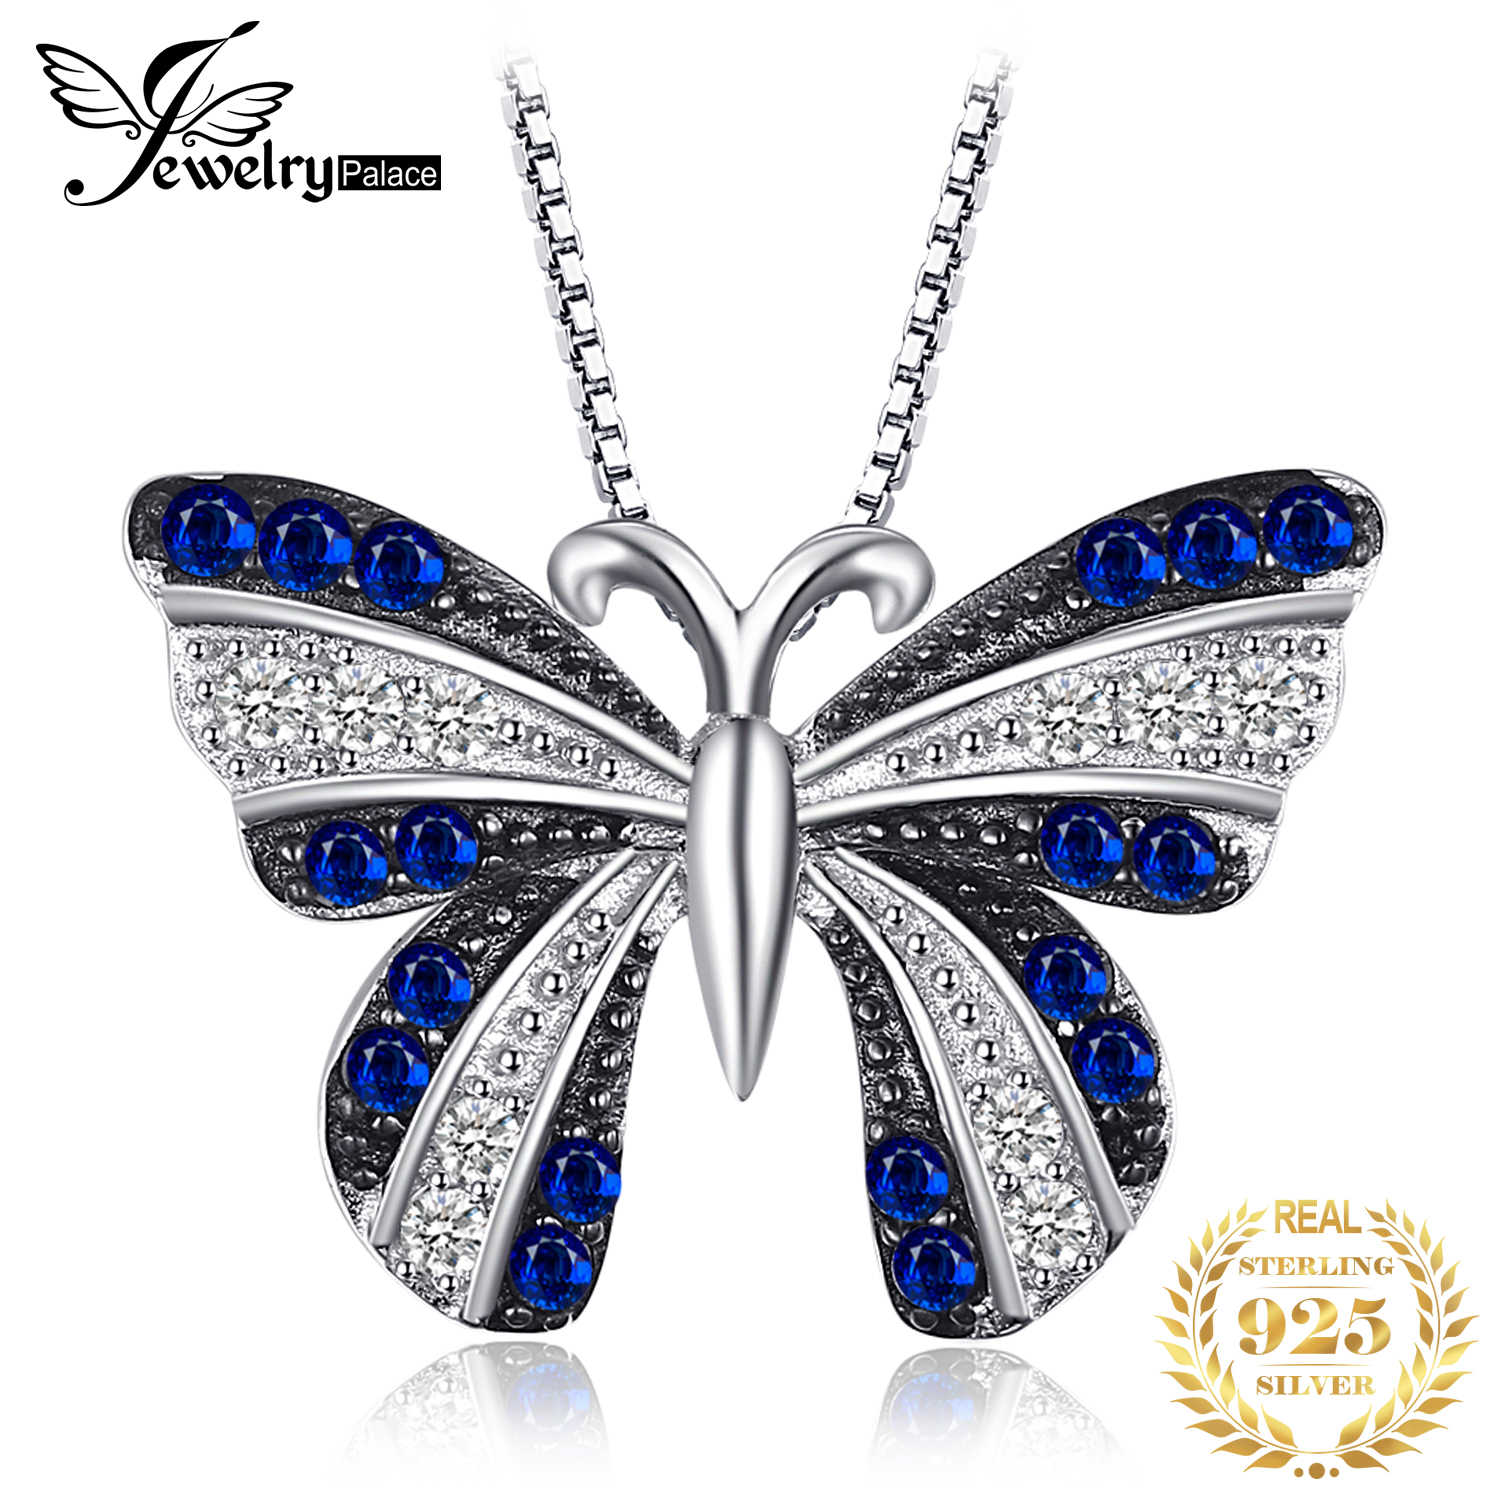 JPalace Butterfly Created Spinel Pendant Necklace 925 Sterling Silver Gemstones Choker Statement Necklace Women Without Chain